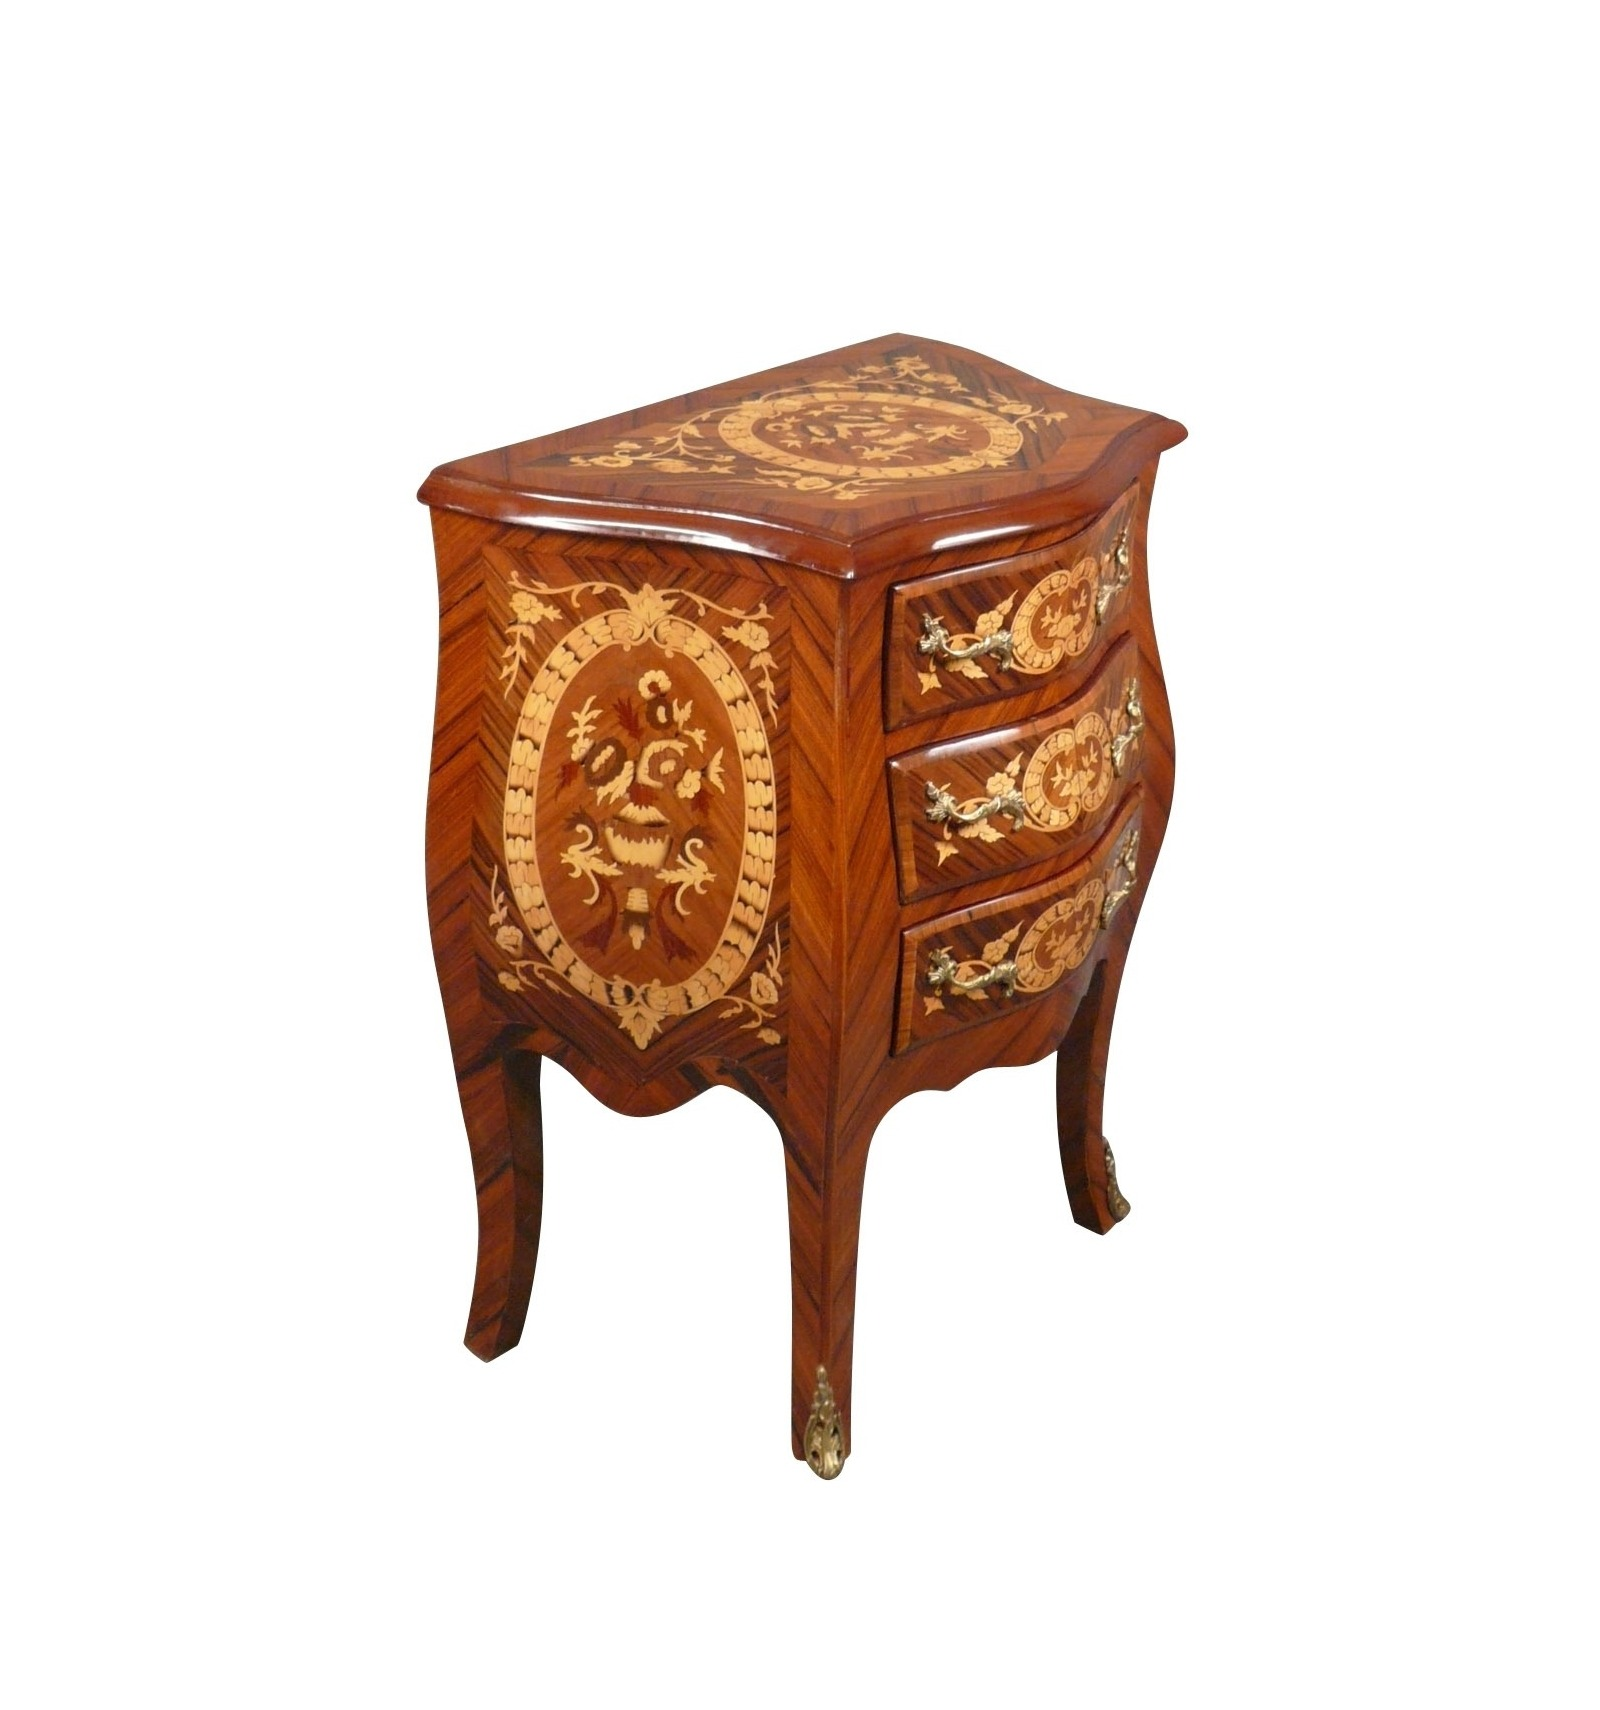 Louis xv commode style wooden furniture - Mobilier style louis xv ...